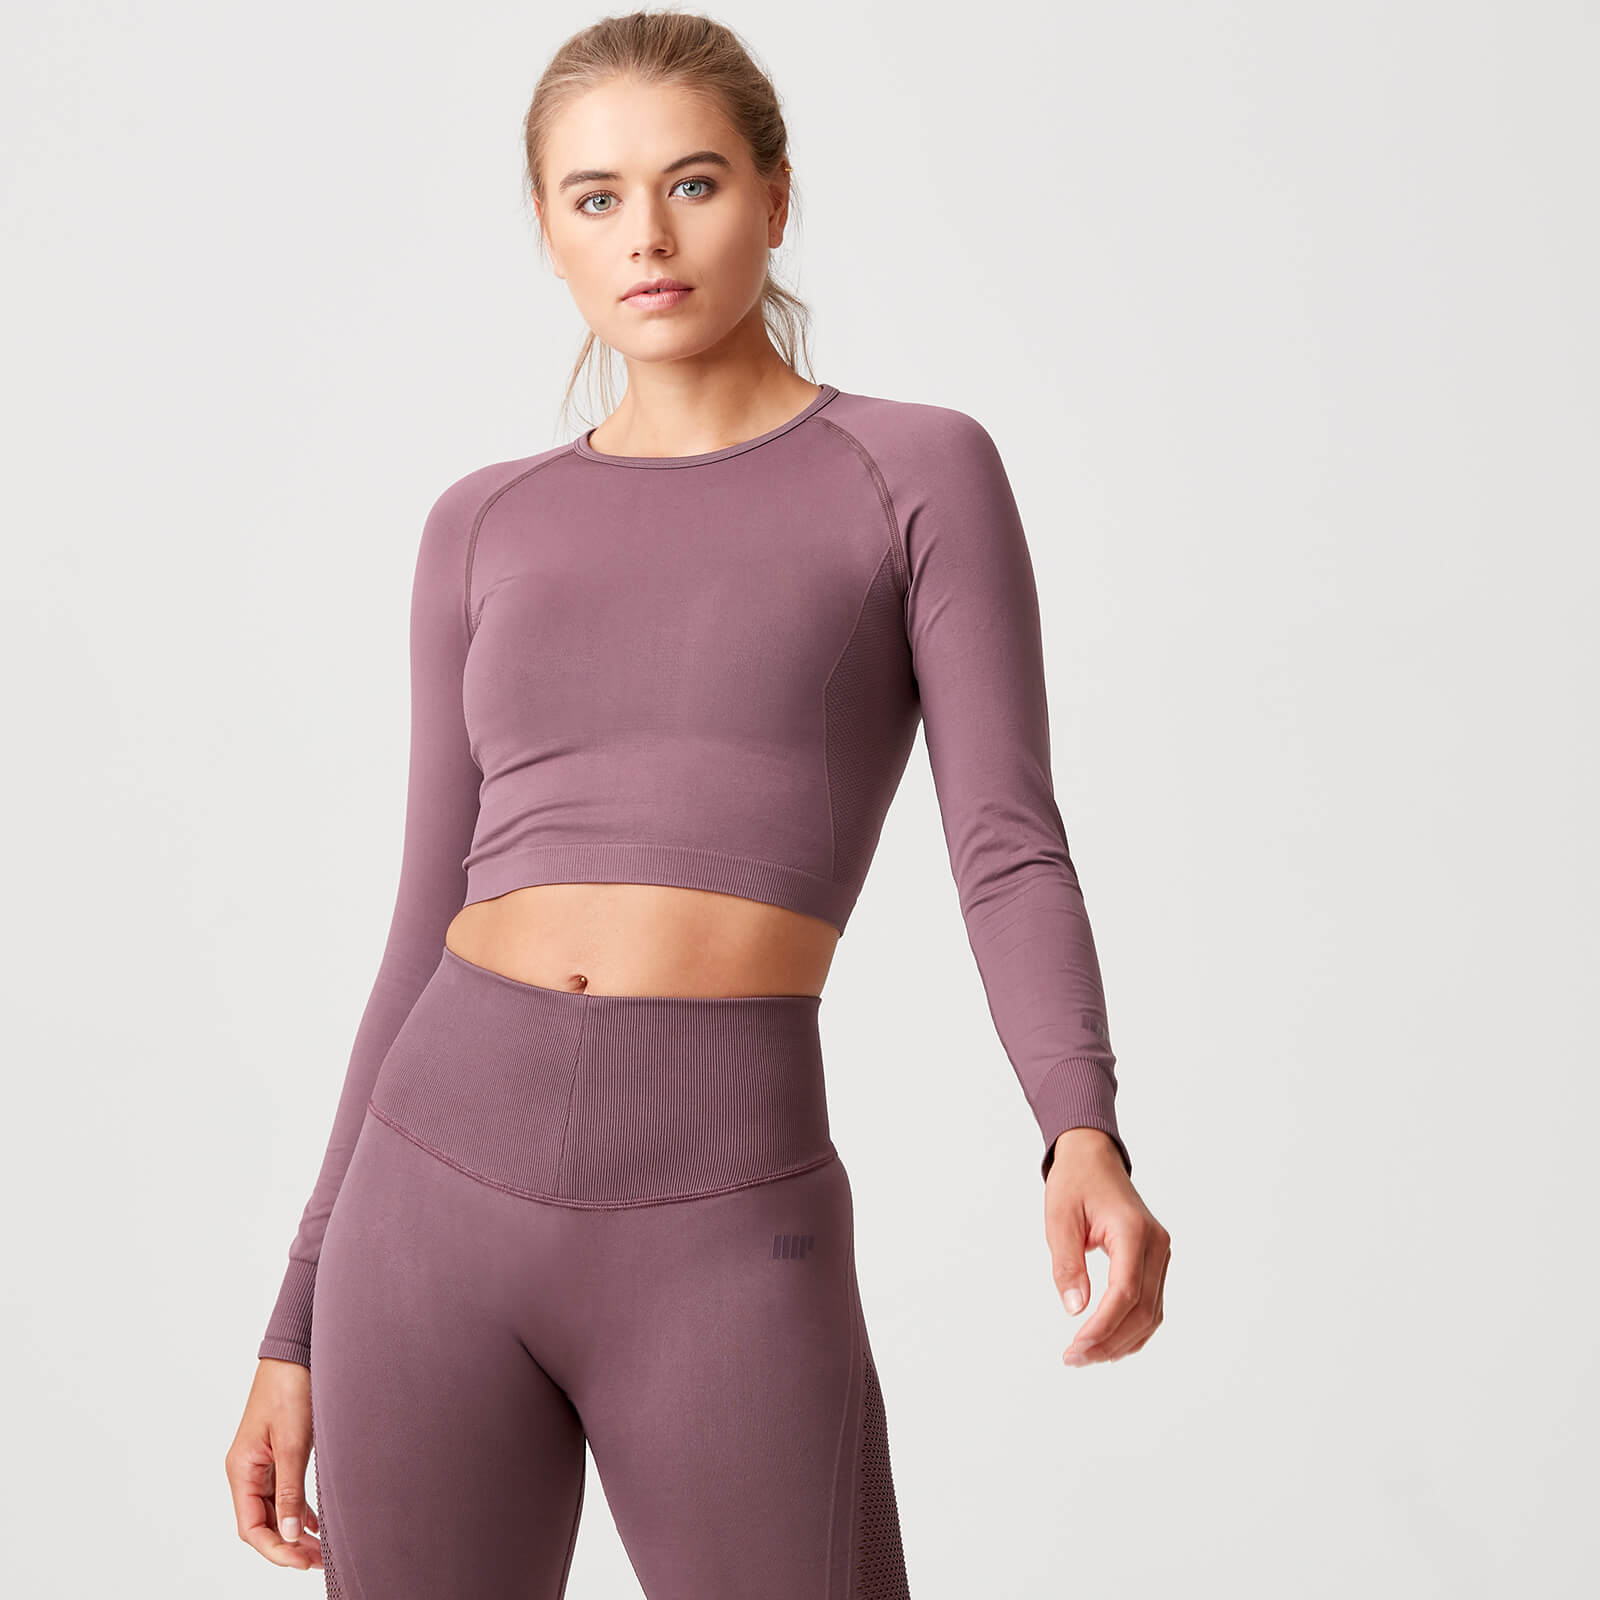 Shape Seamless Crop Top - Mauve - XS